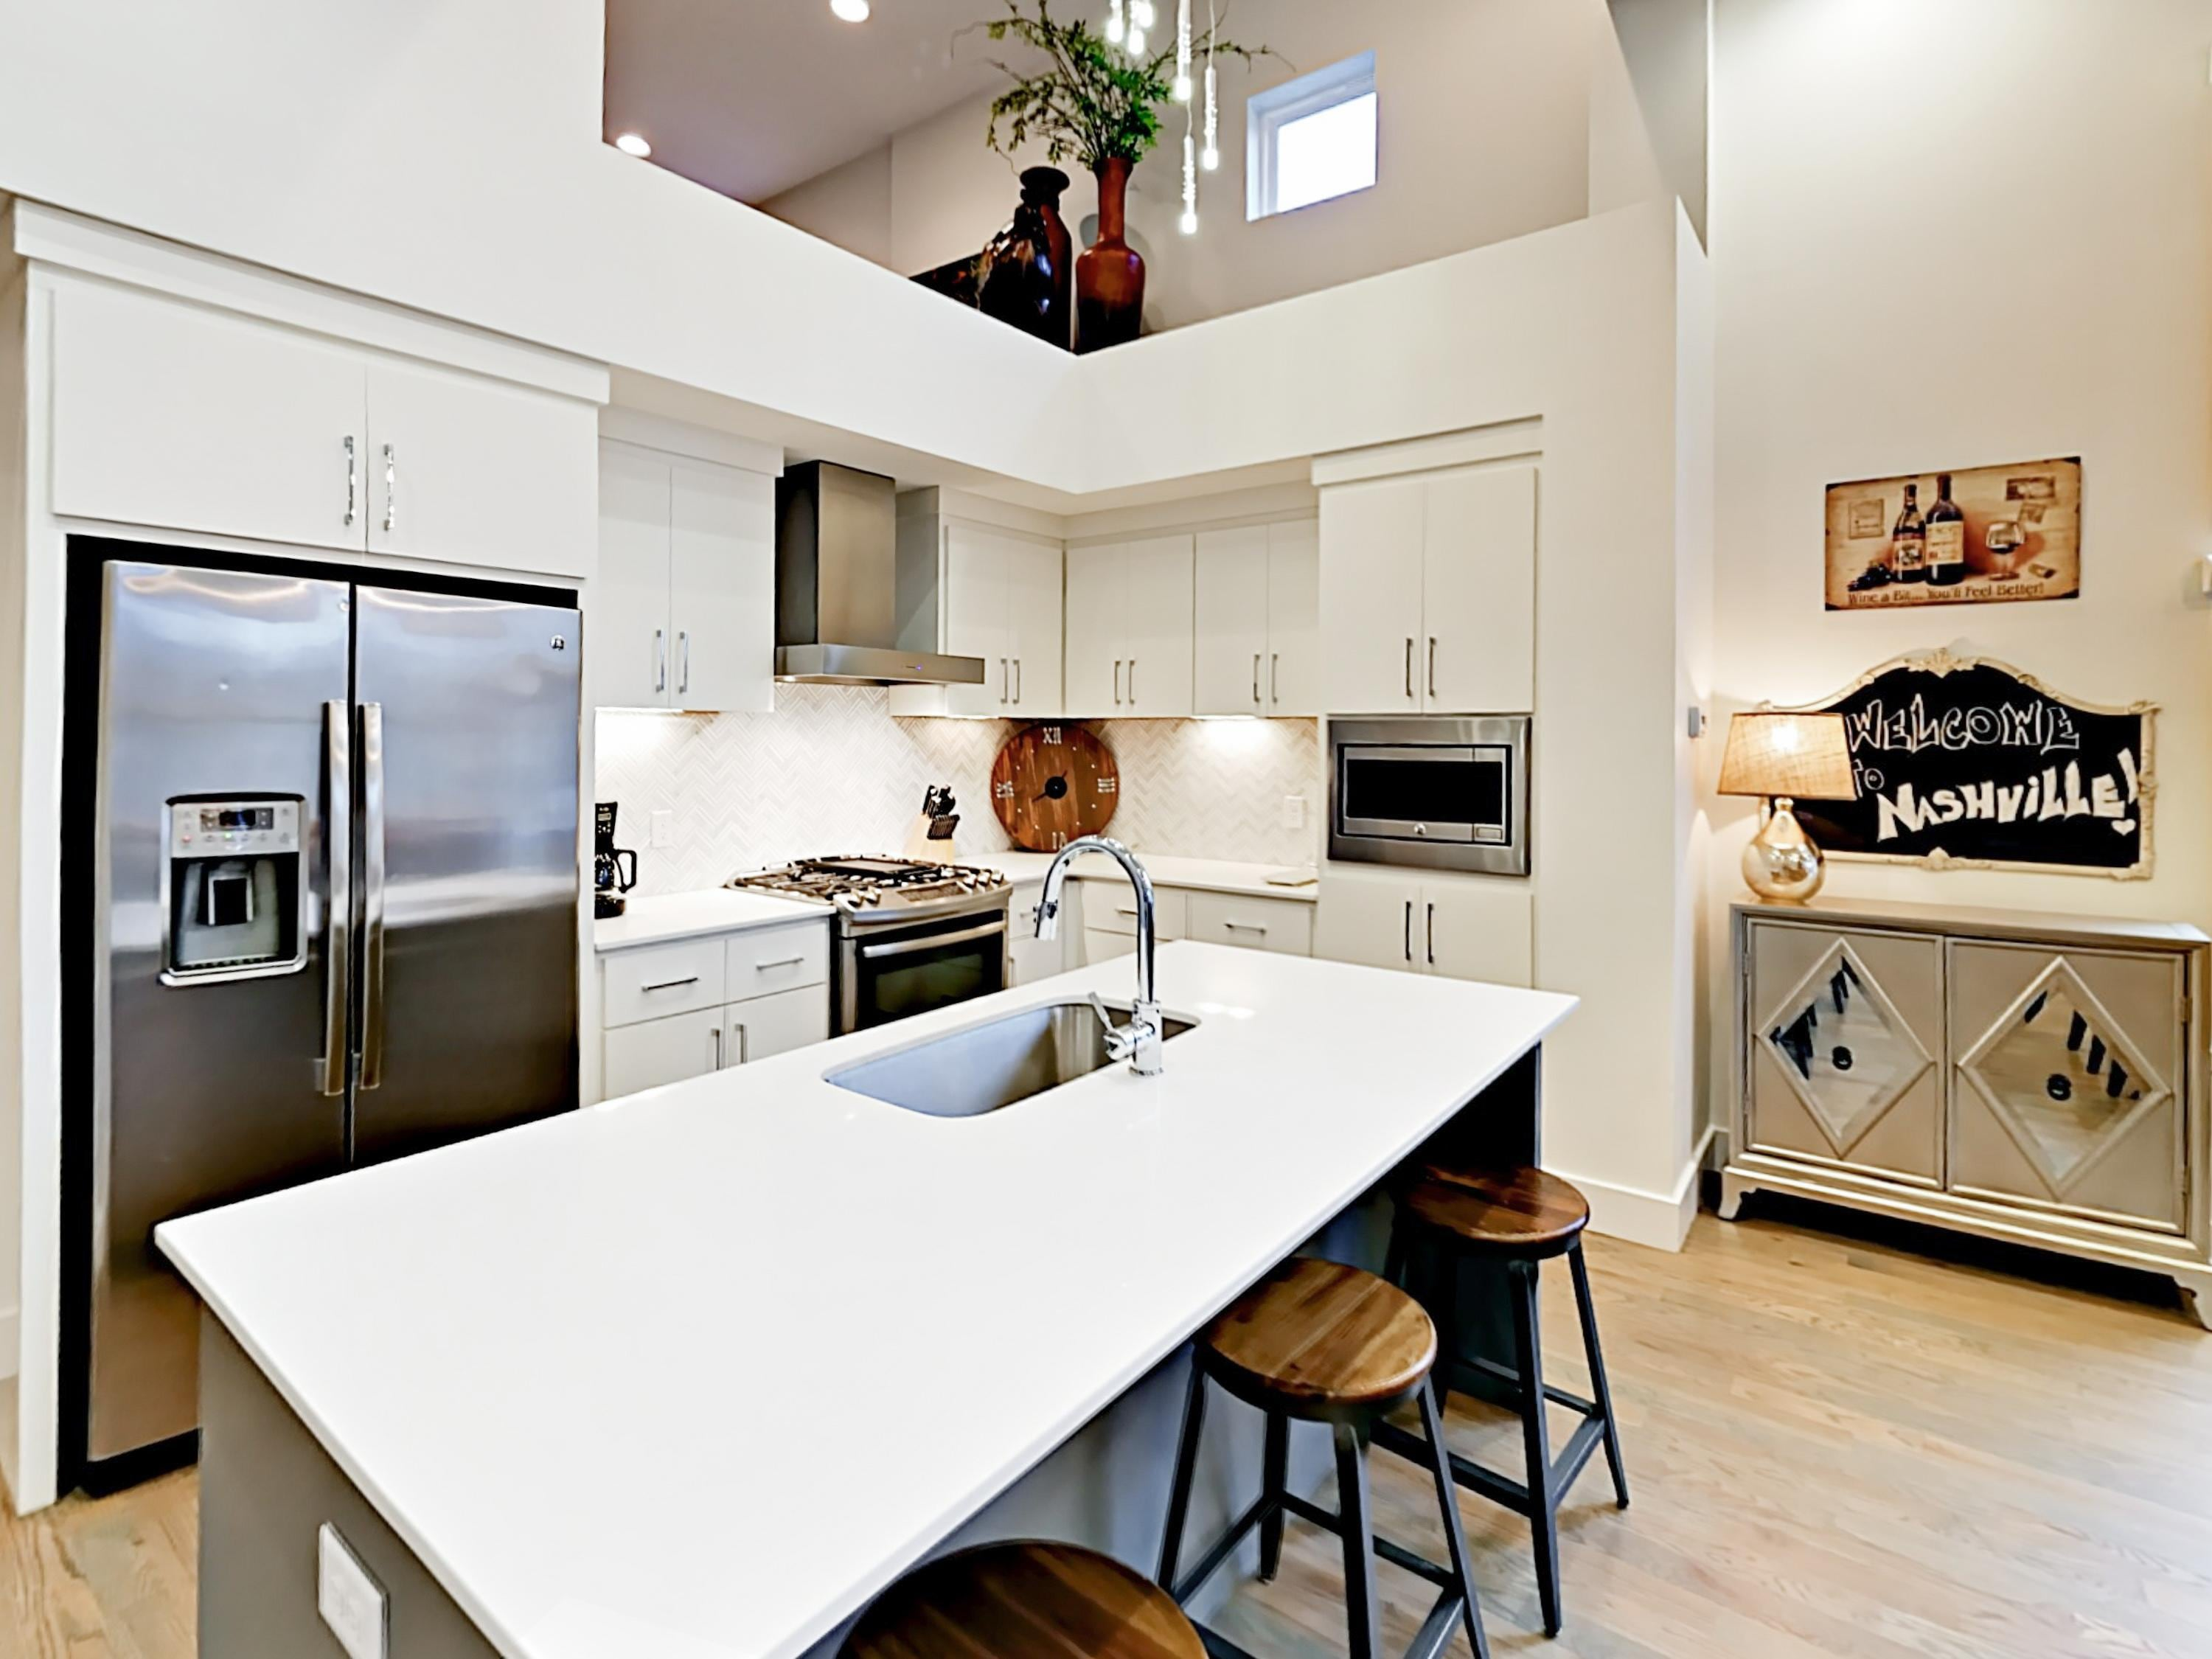 Chic West End Townhome with Balcony Views of Nashville